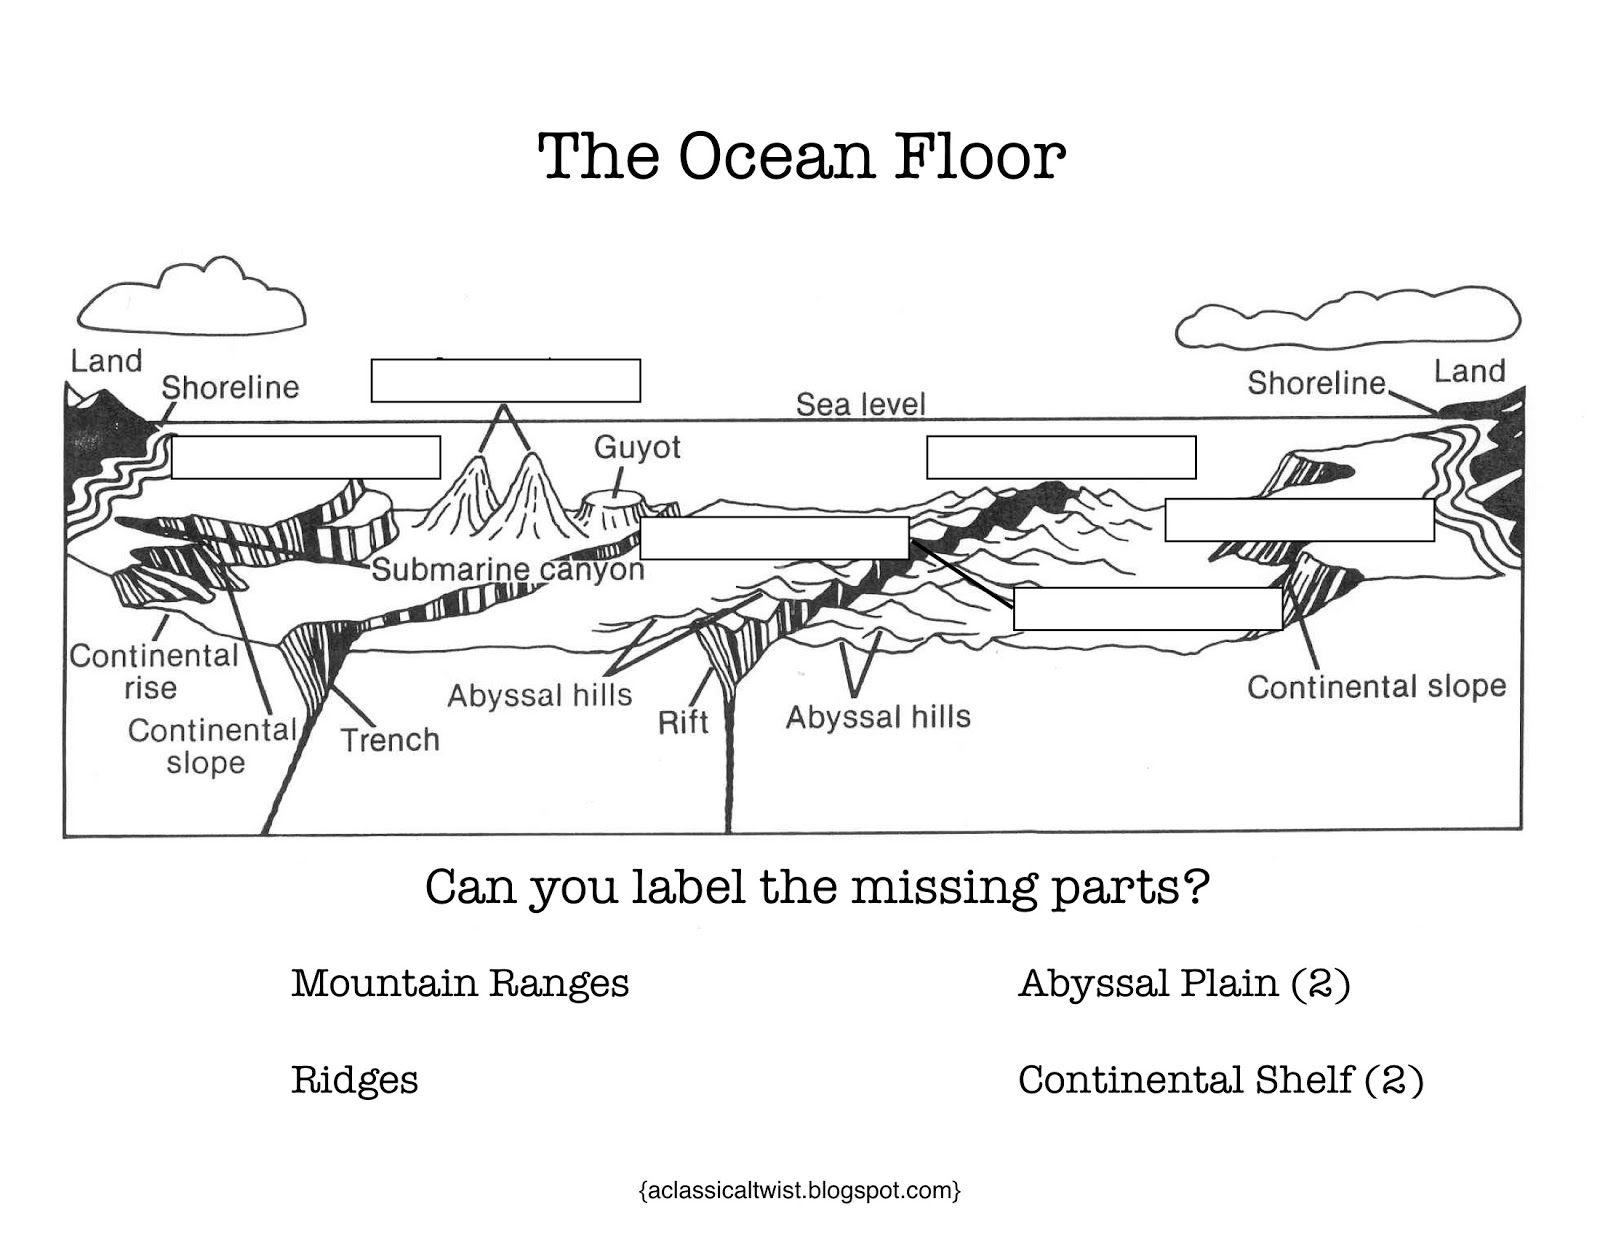 Worksheets Ocean Zones Worksheet homeschooling with a classical twist cc review at home good cycle week 18 ocean floor